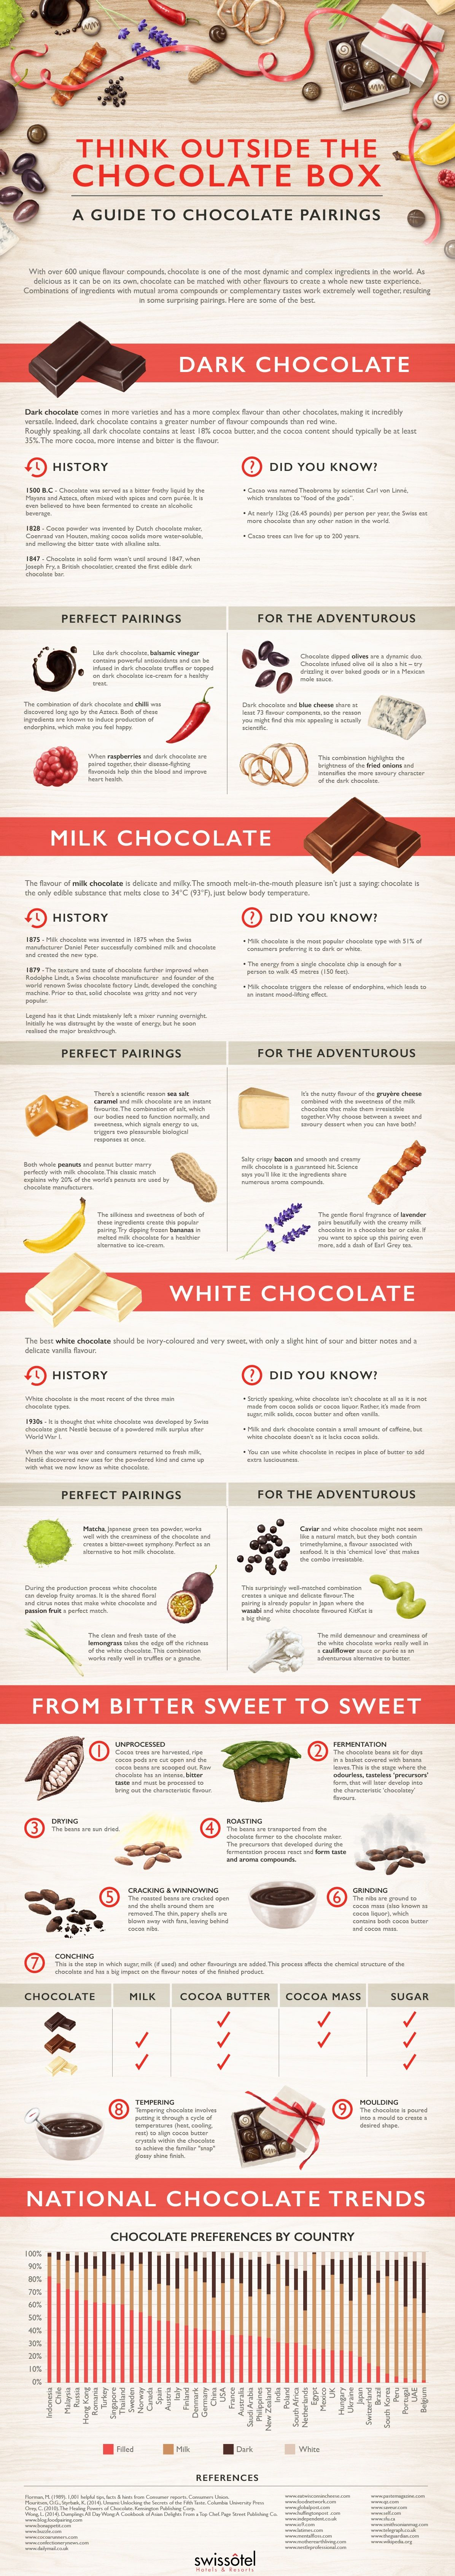 Think Outside the Chocolate Box #infographic